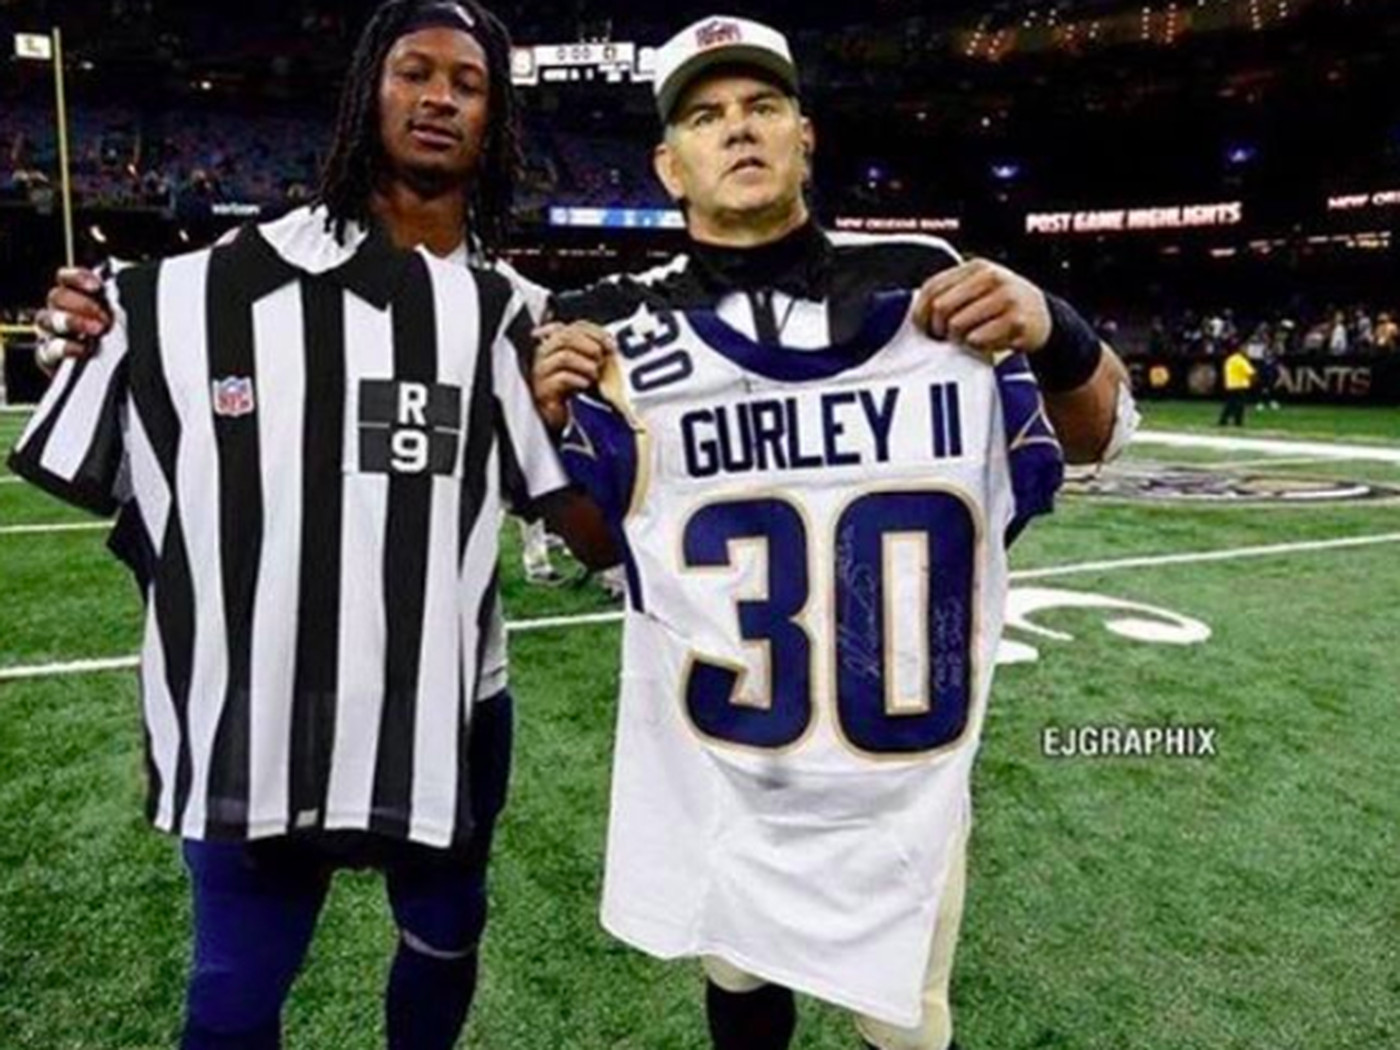 e797864b620 Todd Gurley s fake photo with a ref tricked Mike Francesa and others -  SBNation.com